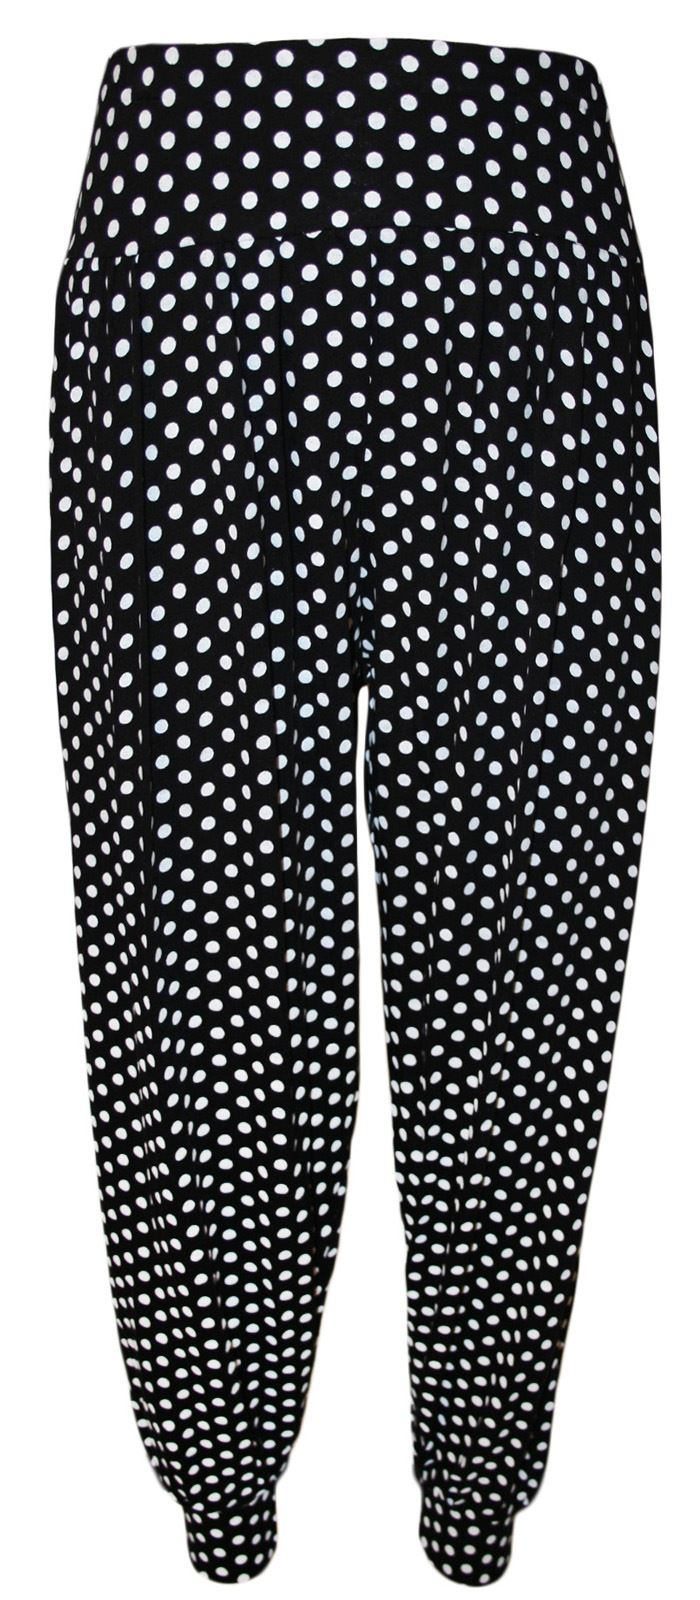 Find great deals on eBay for womens polka dot pants. Shop with confidence.